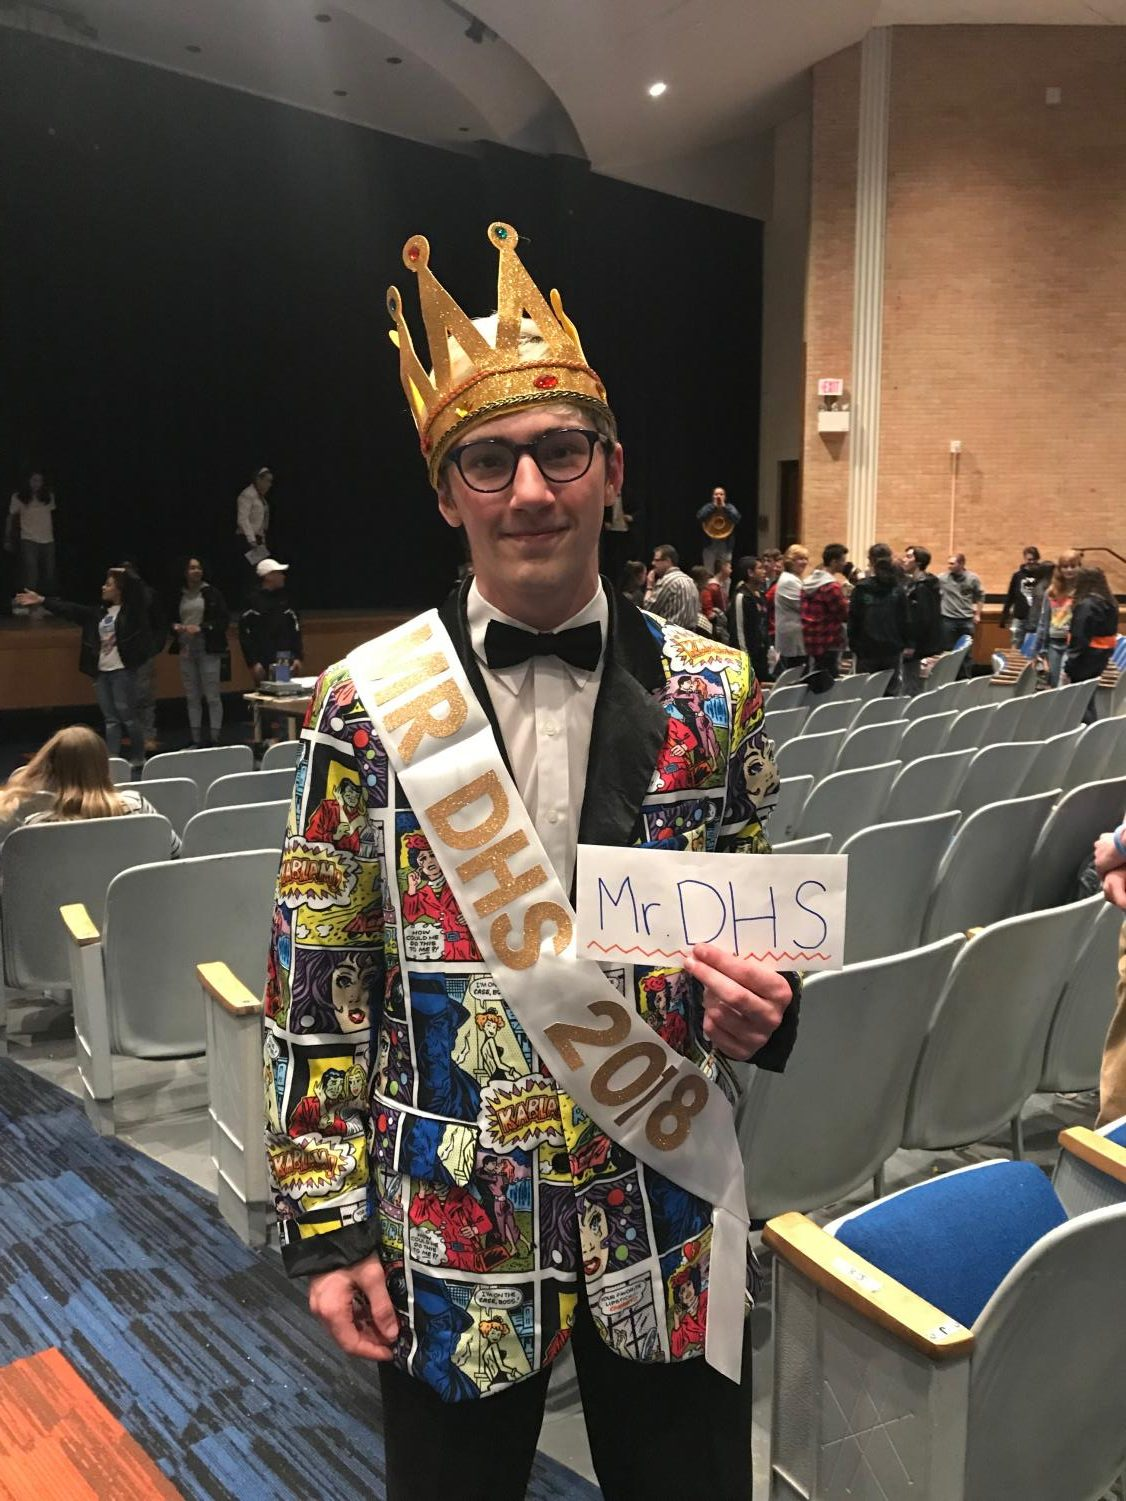 Mr. DHS winner Nicolas Savo.